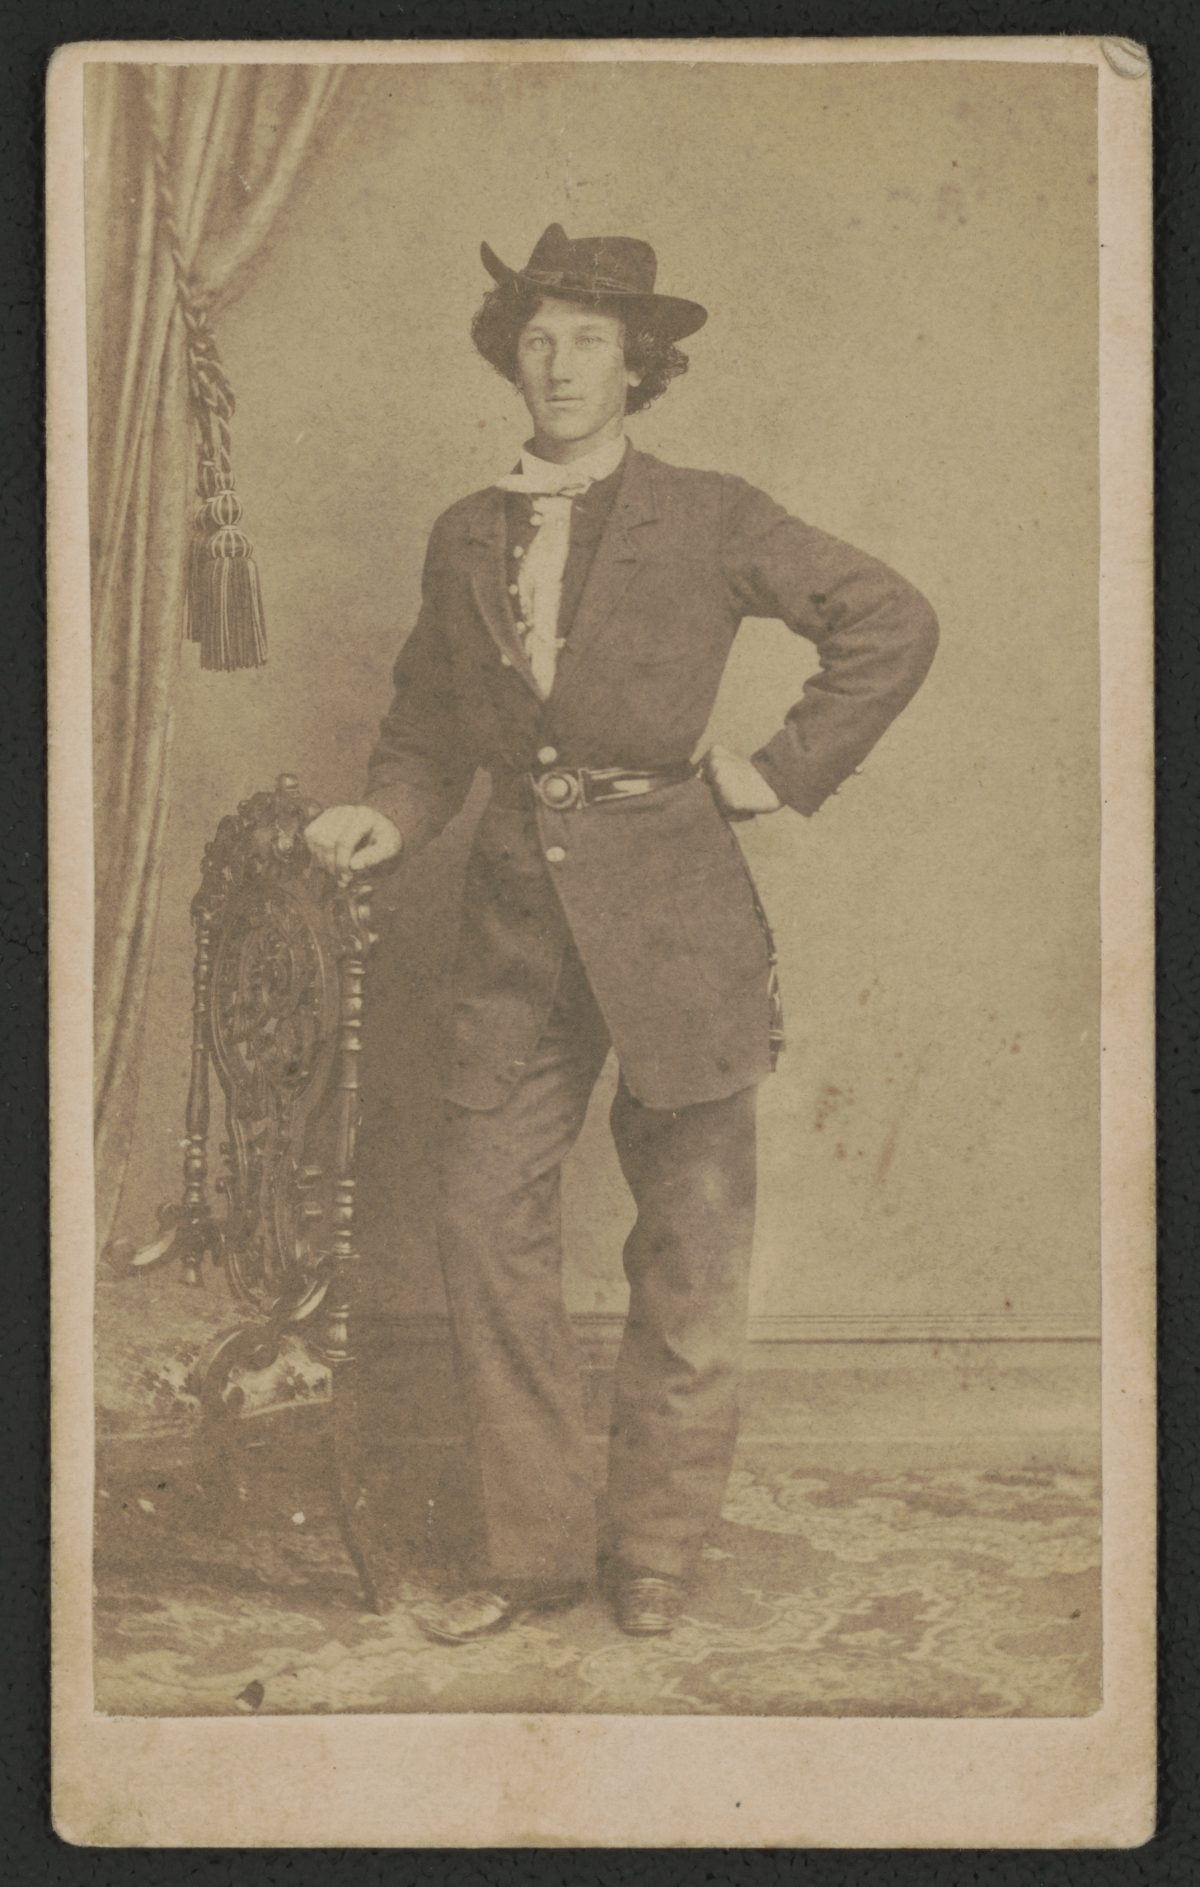 Captain Edward D. Bean of Co. C, 2nd New Hampshire Infantry Regiment in uniform - c. 1861